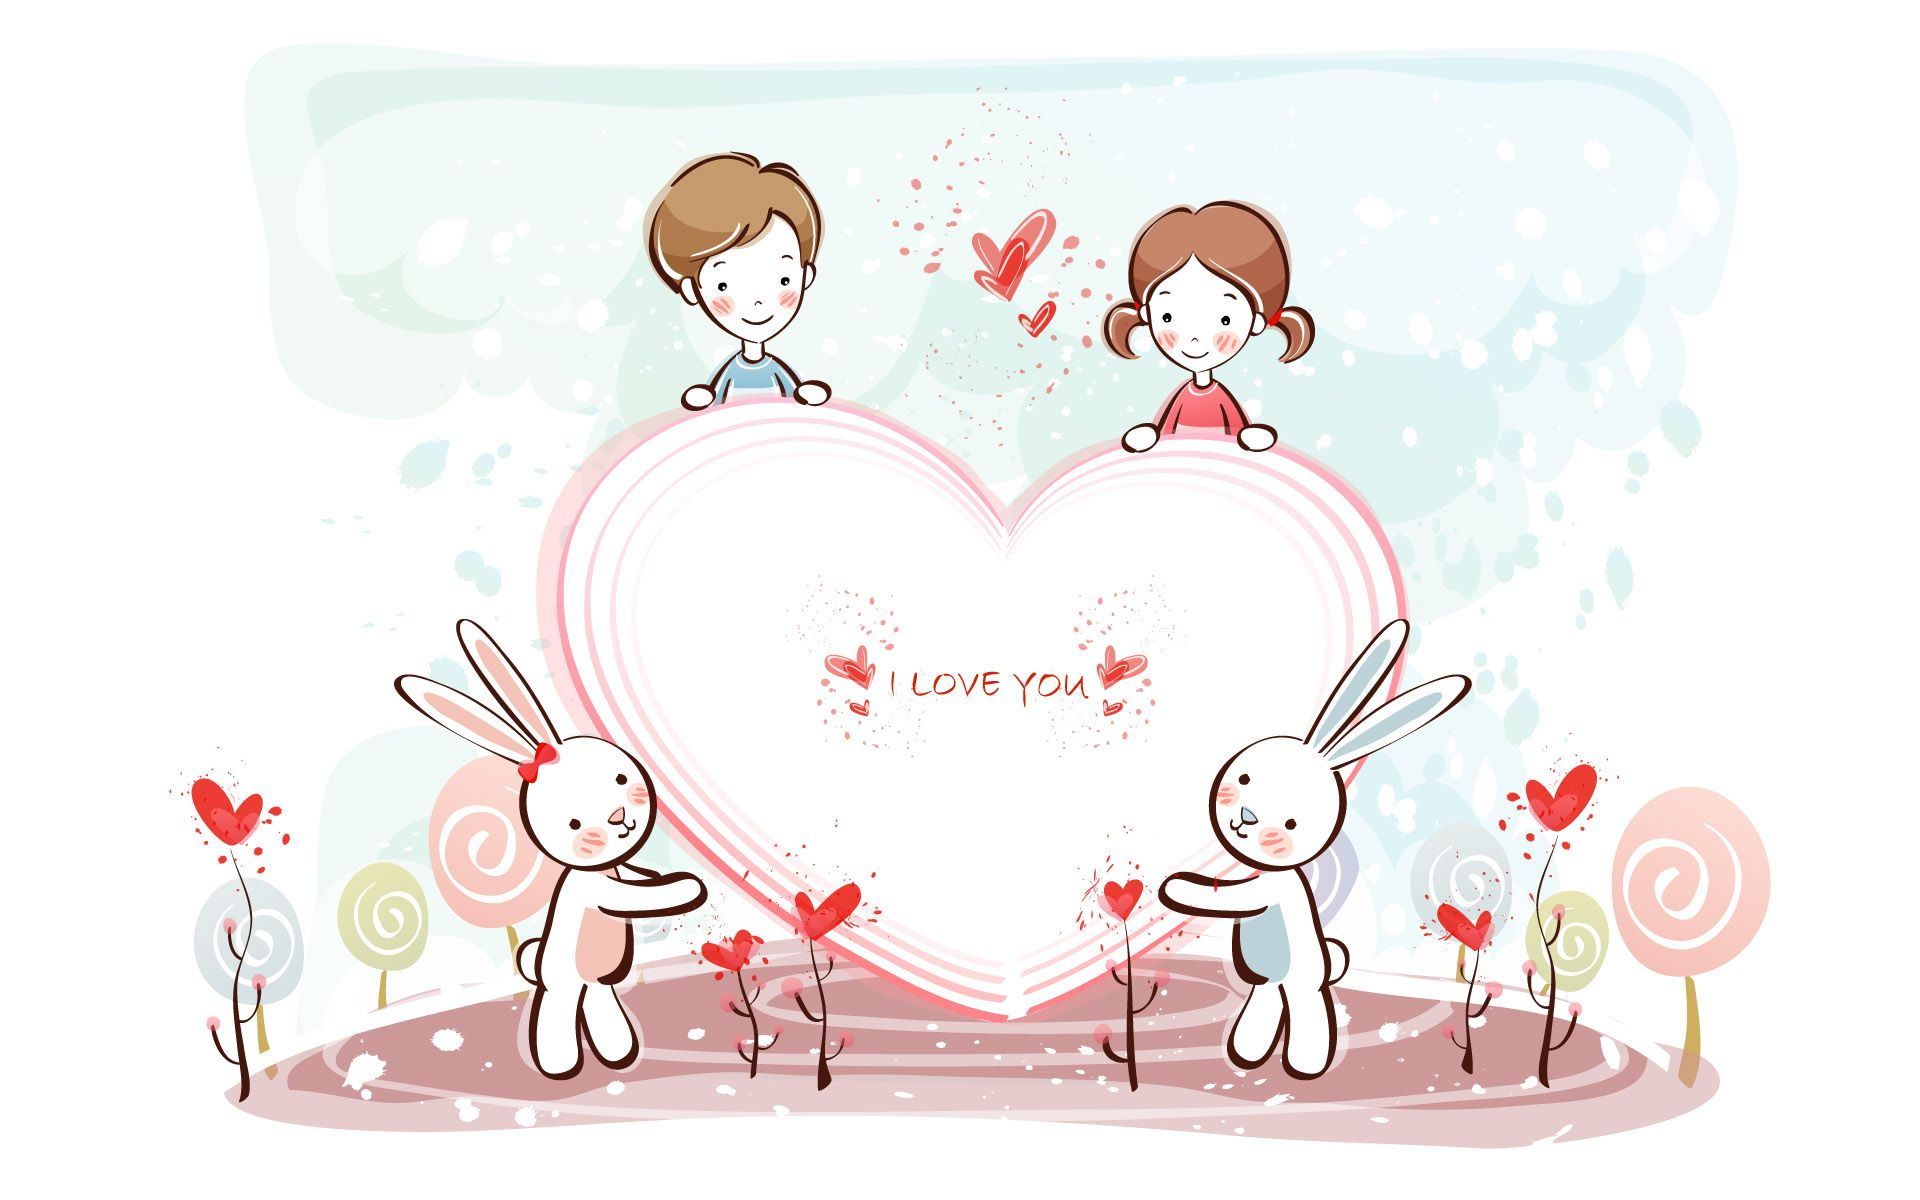 409ab7d7ec9eb129d9402e3f3c0975d3 propose day it comes on second day of the valentine's week it is,Valentines Day Meme For Children